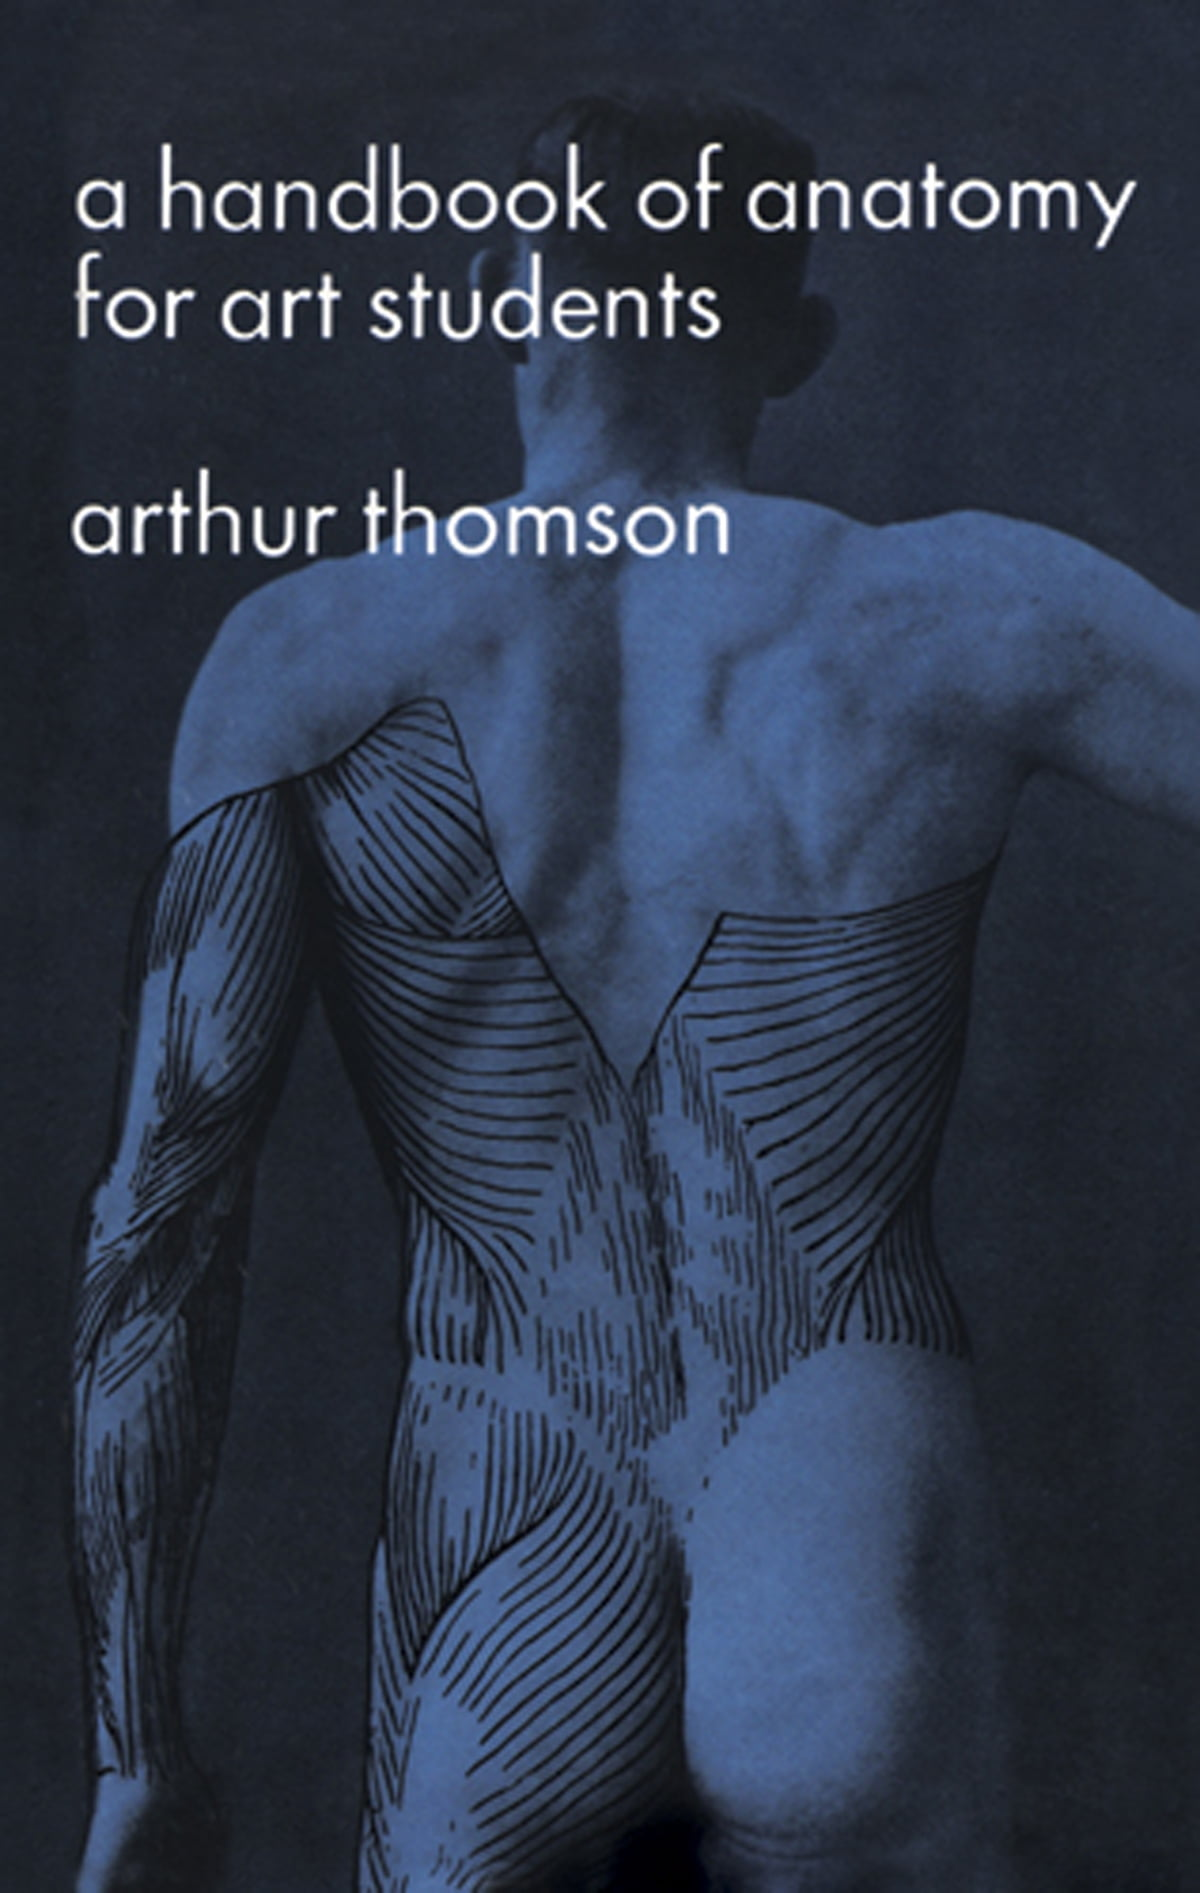 A Handbook Of Anatomy For Art Students Ebook By Arthur Thomson